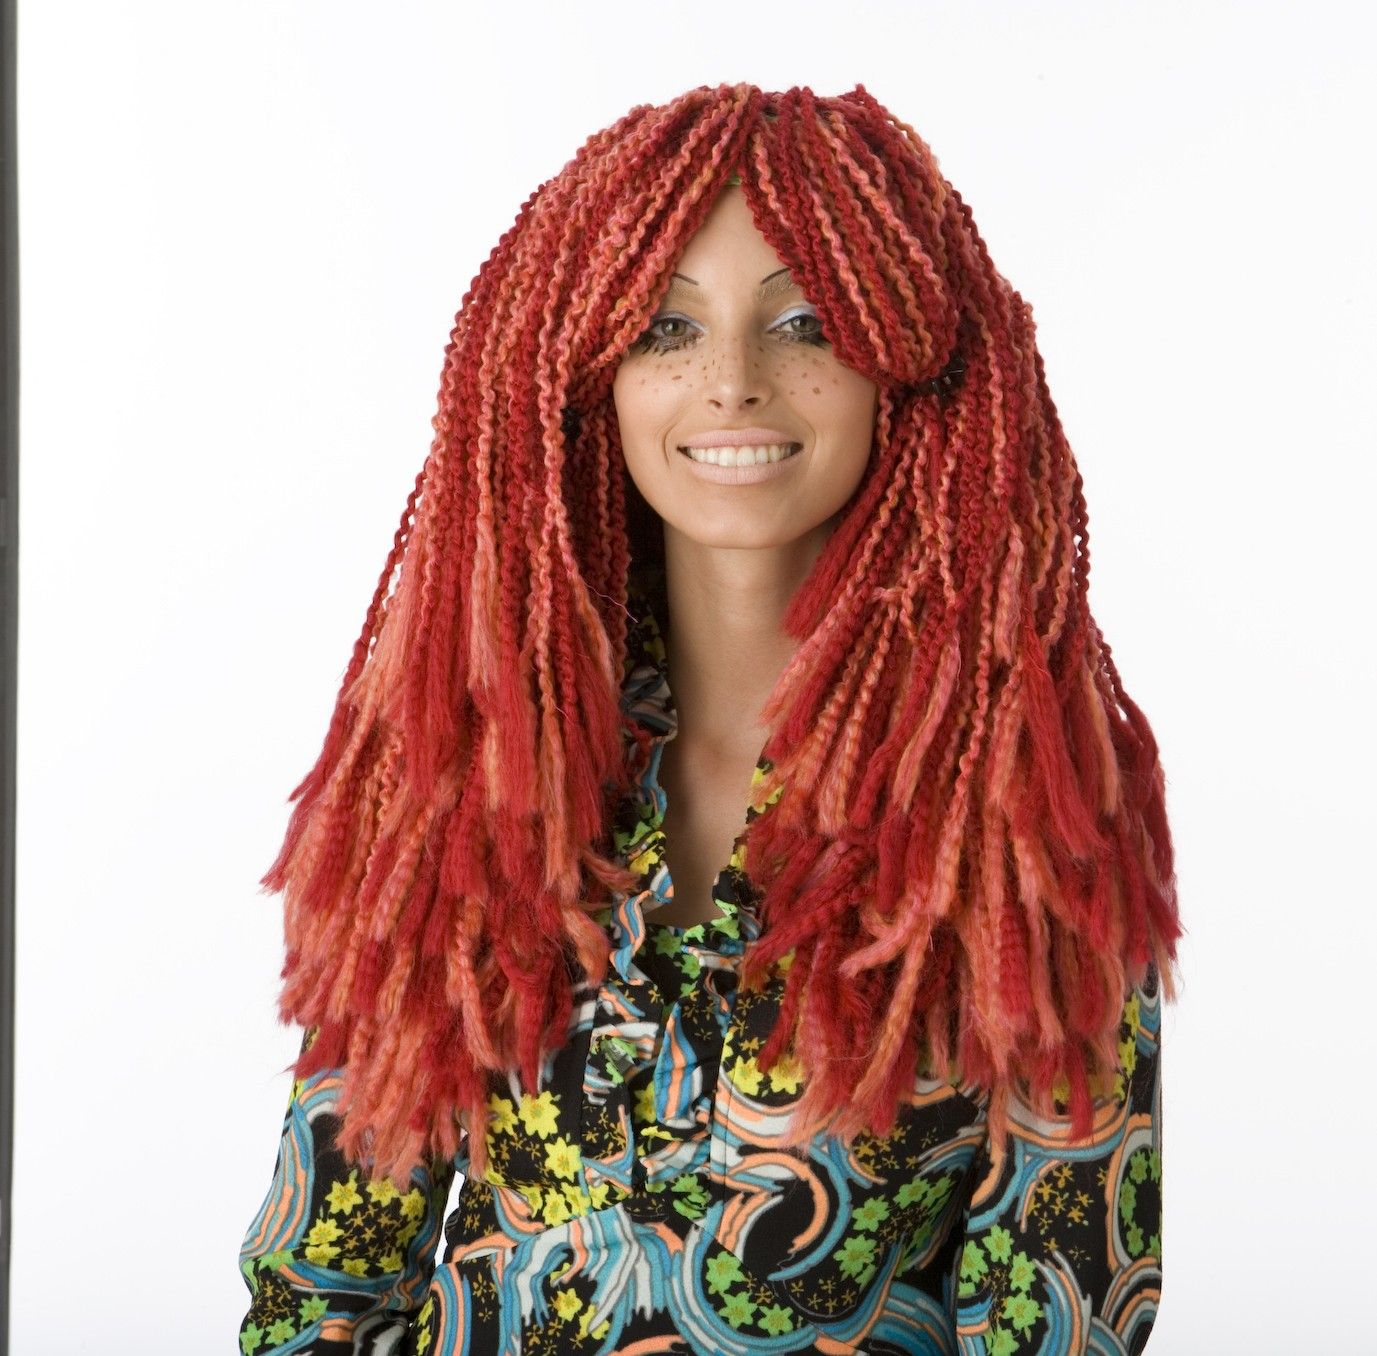 Wild Wild Red Wig Pattern (Crochet) | Crochet | Pinterest